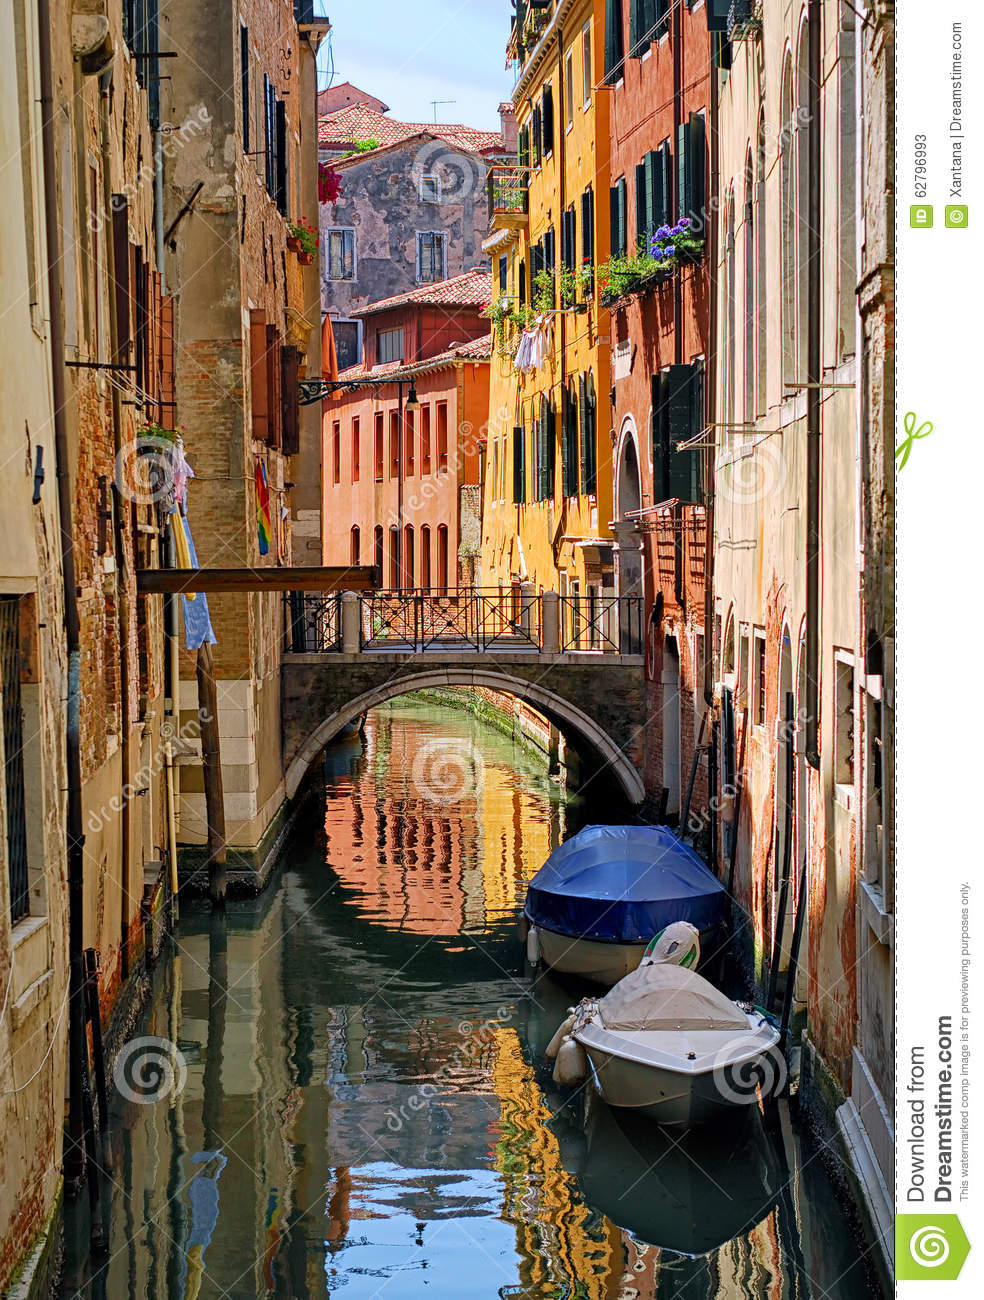 Narrow Channel Street In Venice, Italy Stock Photo - Image: 62796993